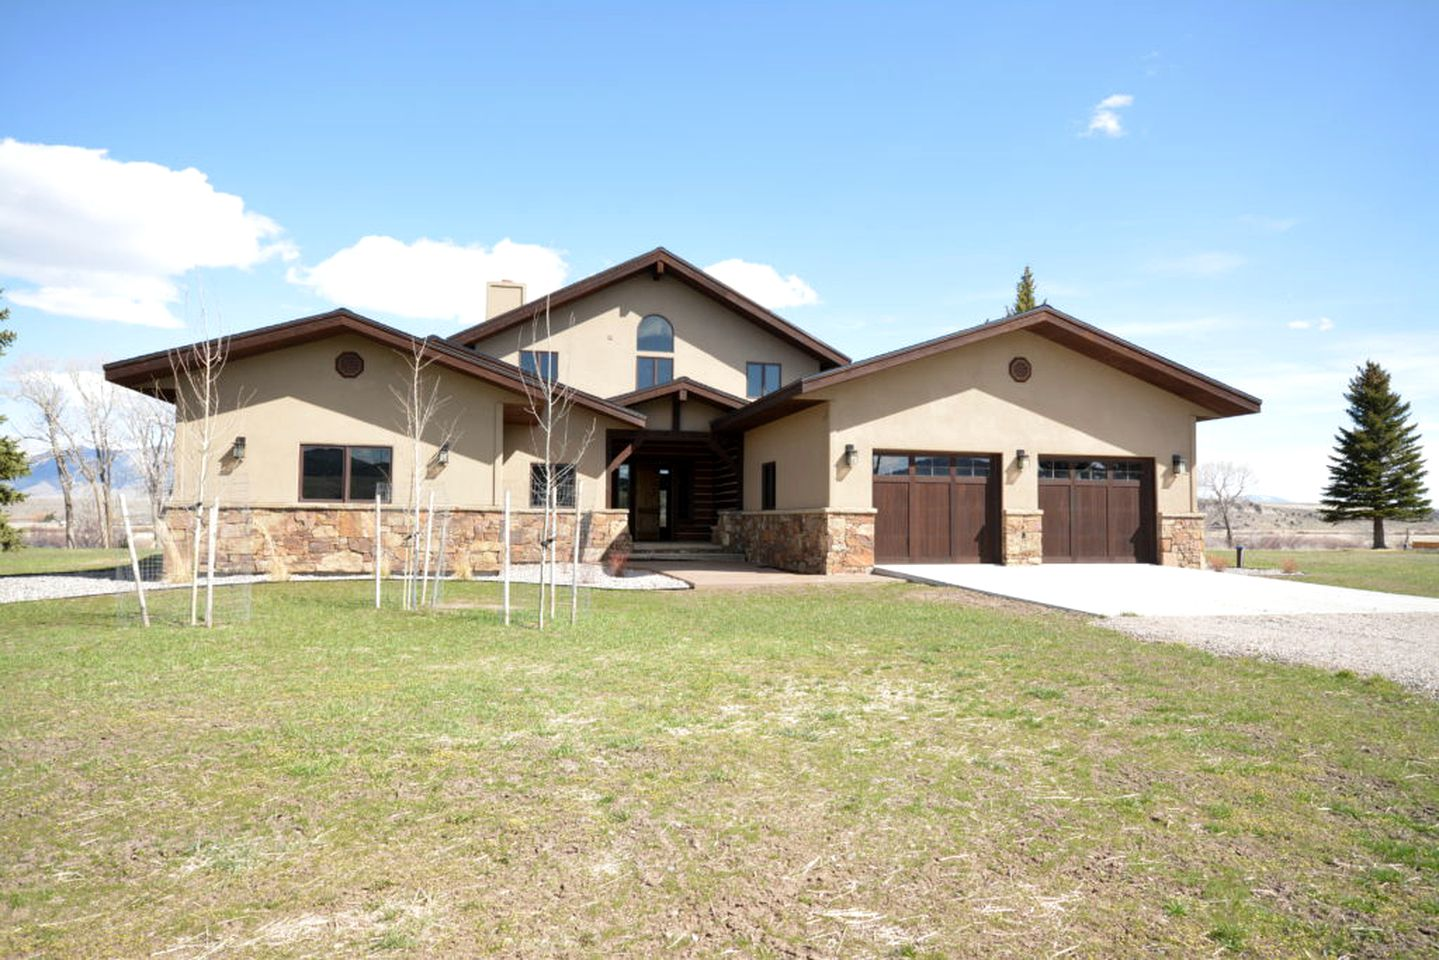 Vacation Rentals (Ennis, Montana, United States)